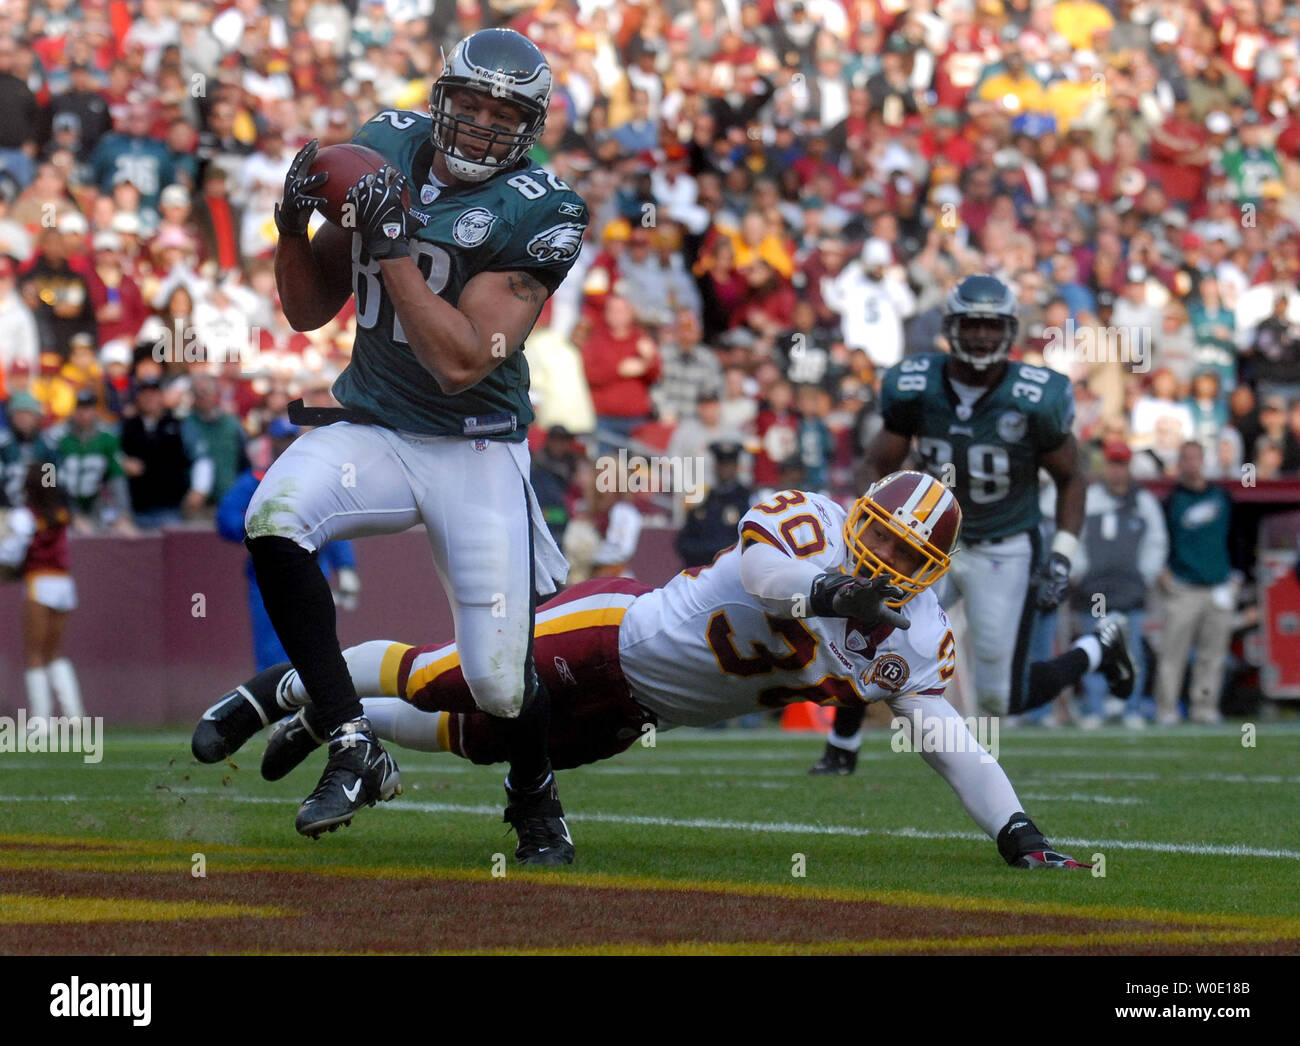 Philadelphia Eagles L.J. Smith brings in an 8-yard touchdown reception over Washington Redskins LaRon Landry during the third quarter at FedEx Field in Landover, Maryland on November 11, 2007. (UPI Photo/Kevin Dietsch) - Stock Image